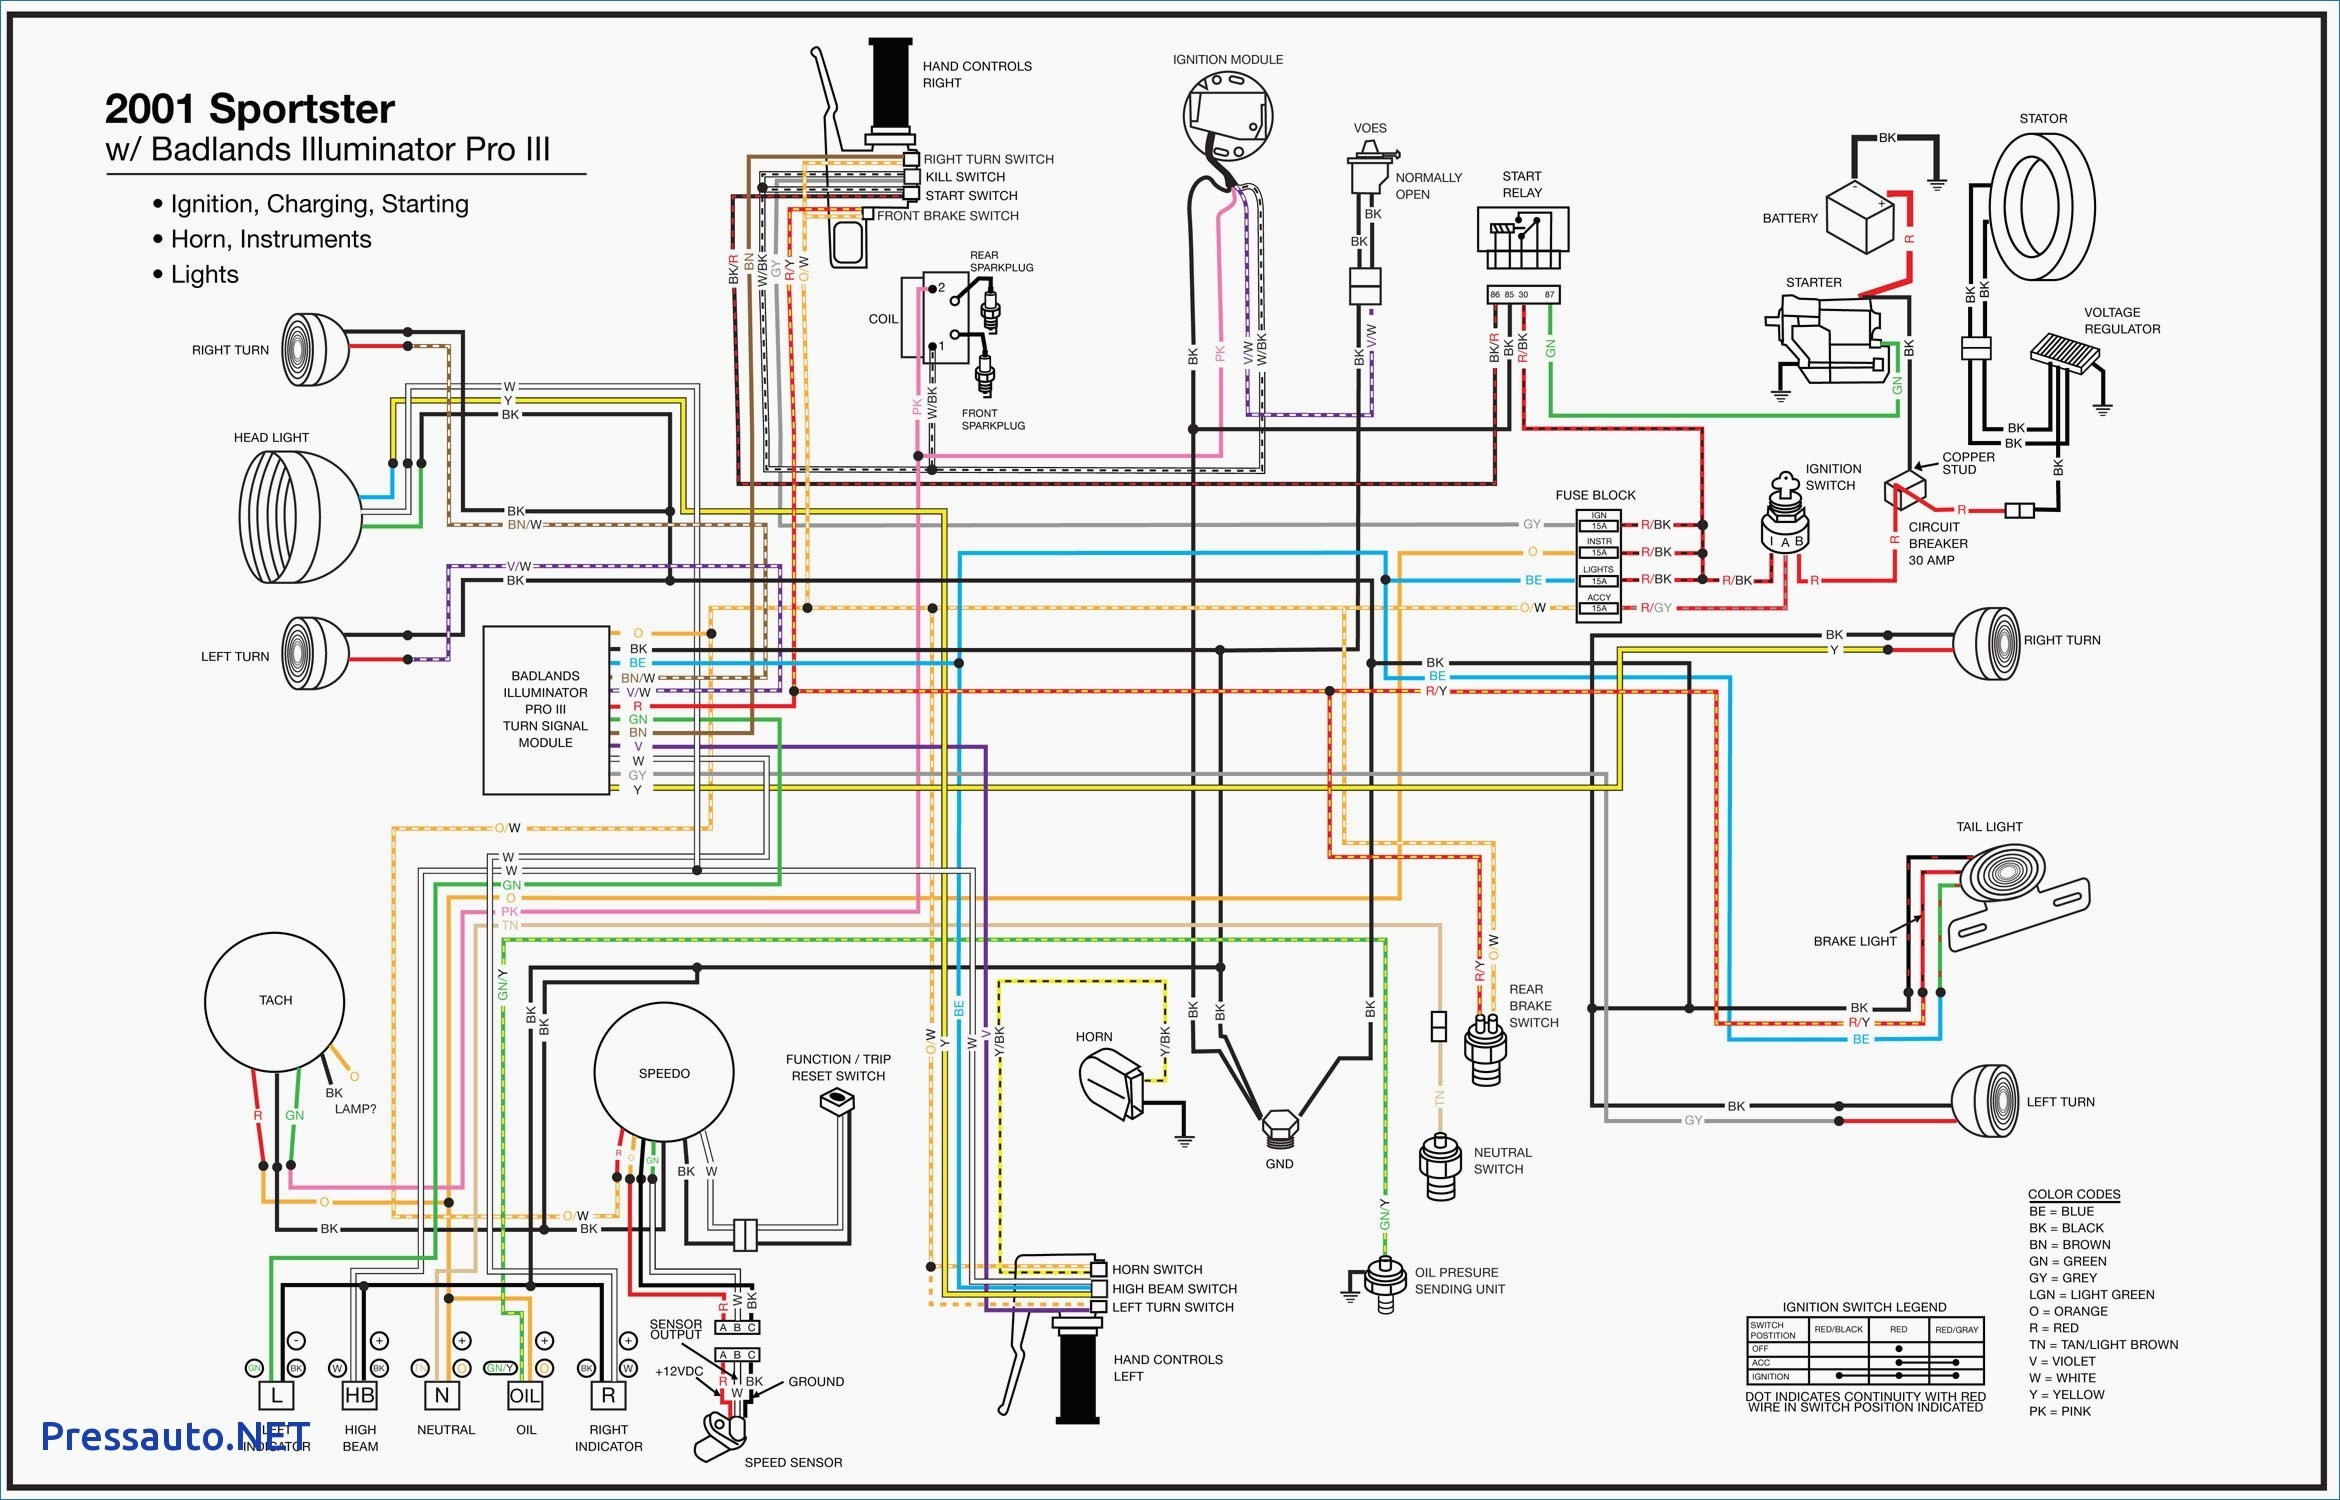 Bmw e46 tail light diagram auto wiring diagram today bmw e46 wiring diagram pdf new wiring diagram image rh mainetreasurechest com bmw e46 led tail asfbconference2016 Images